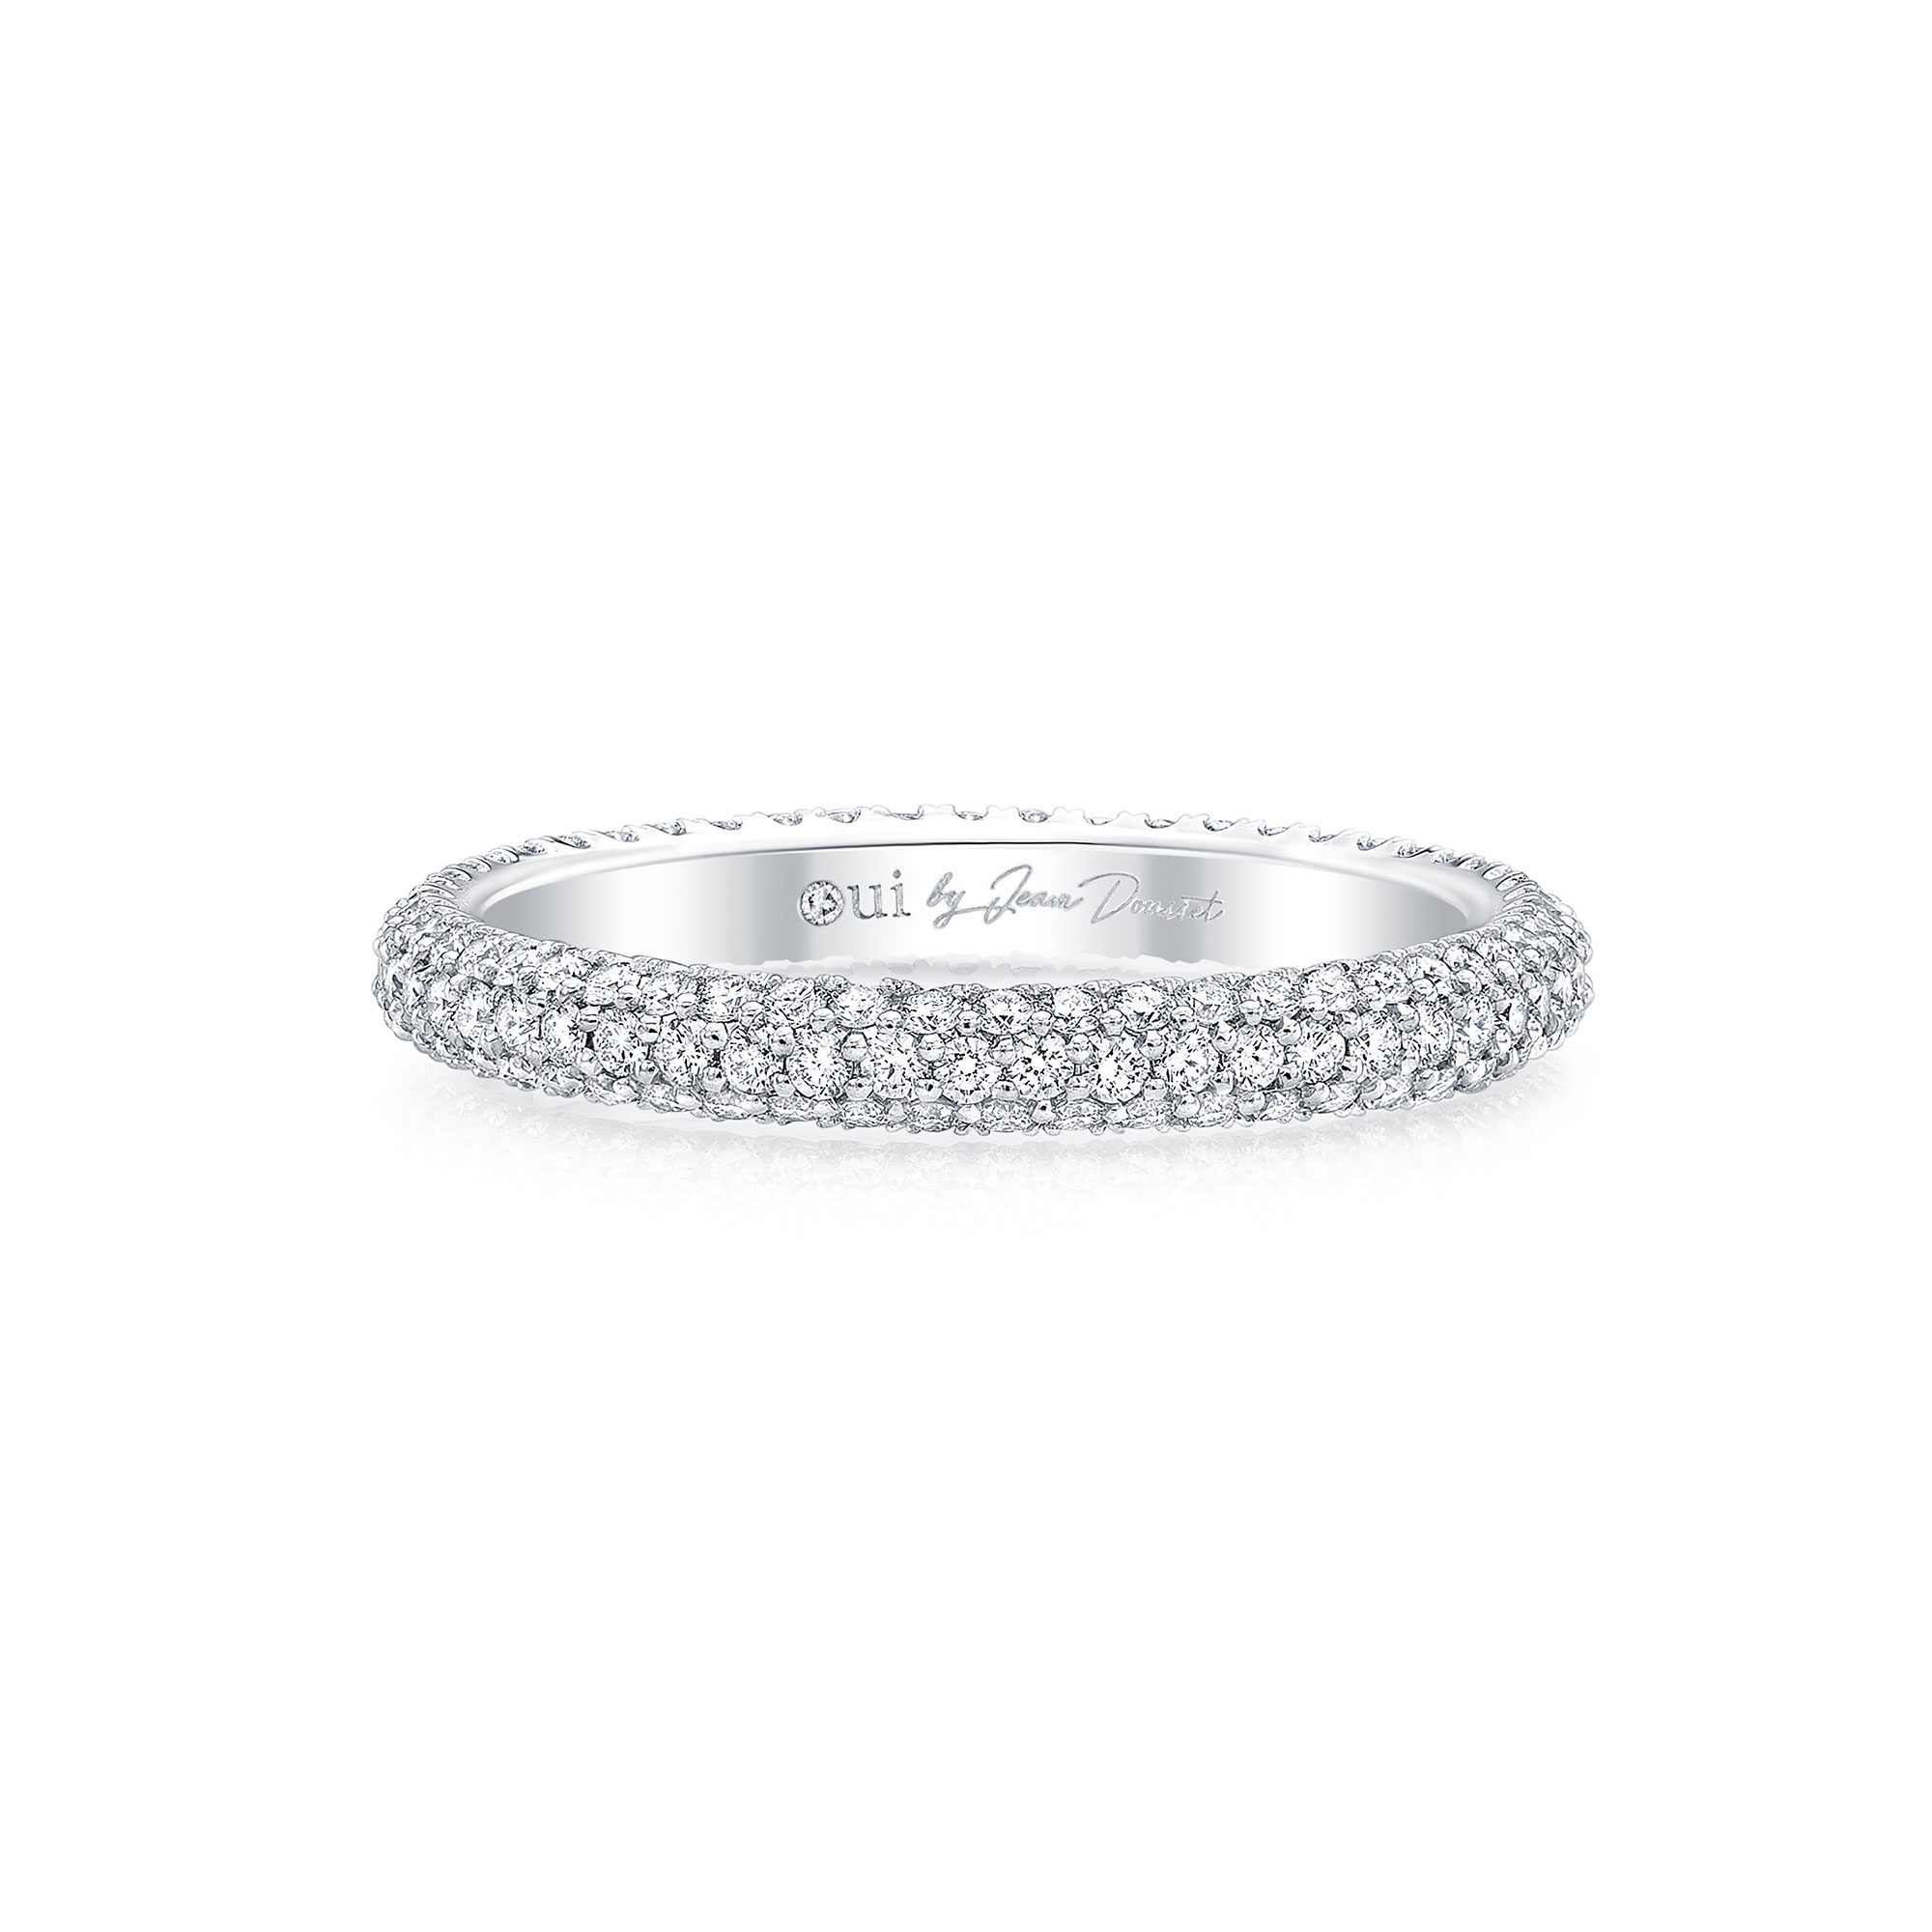 Jacqueline Eternity Band 18k White Gold Front View by Oui by Jean Dousset